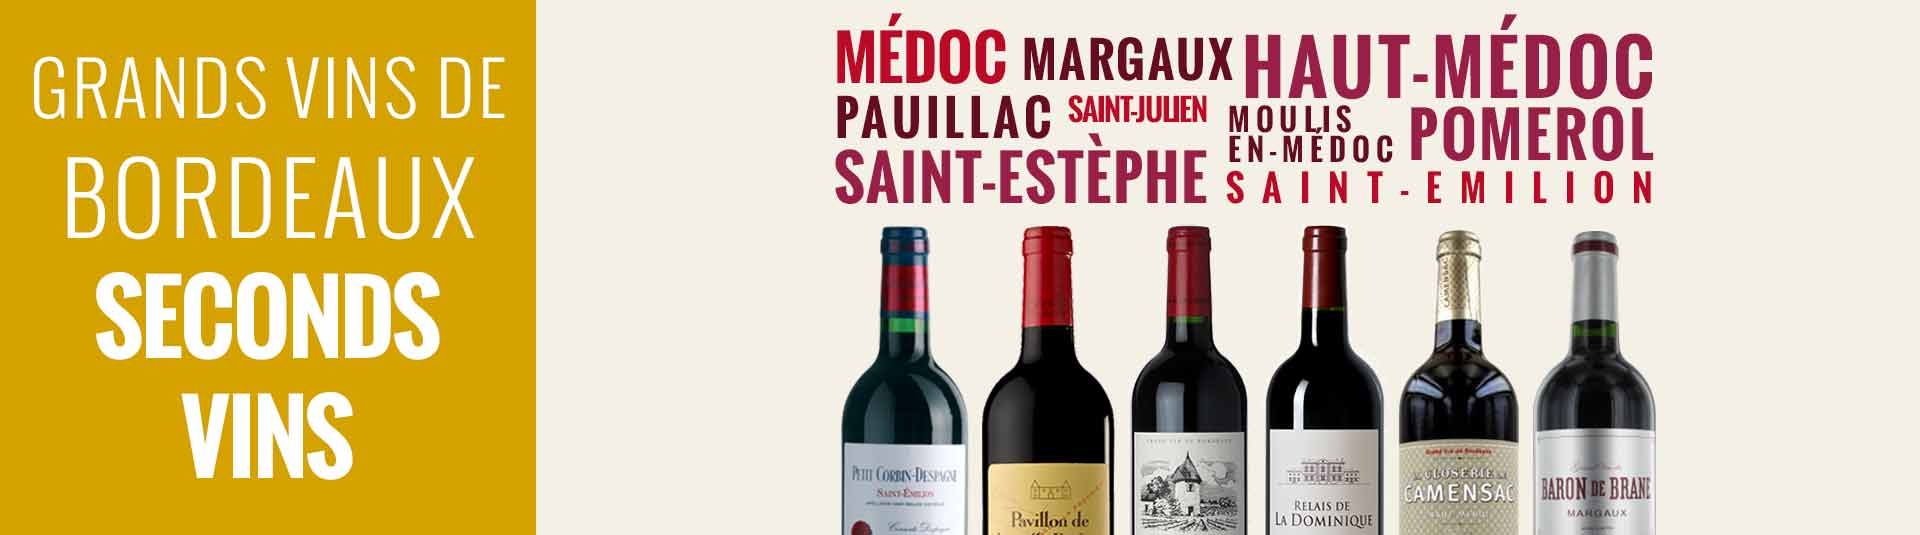 Seconds vins des grands vins de Bordeaux